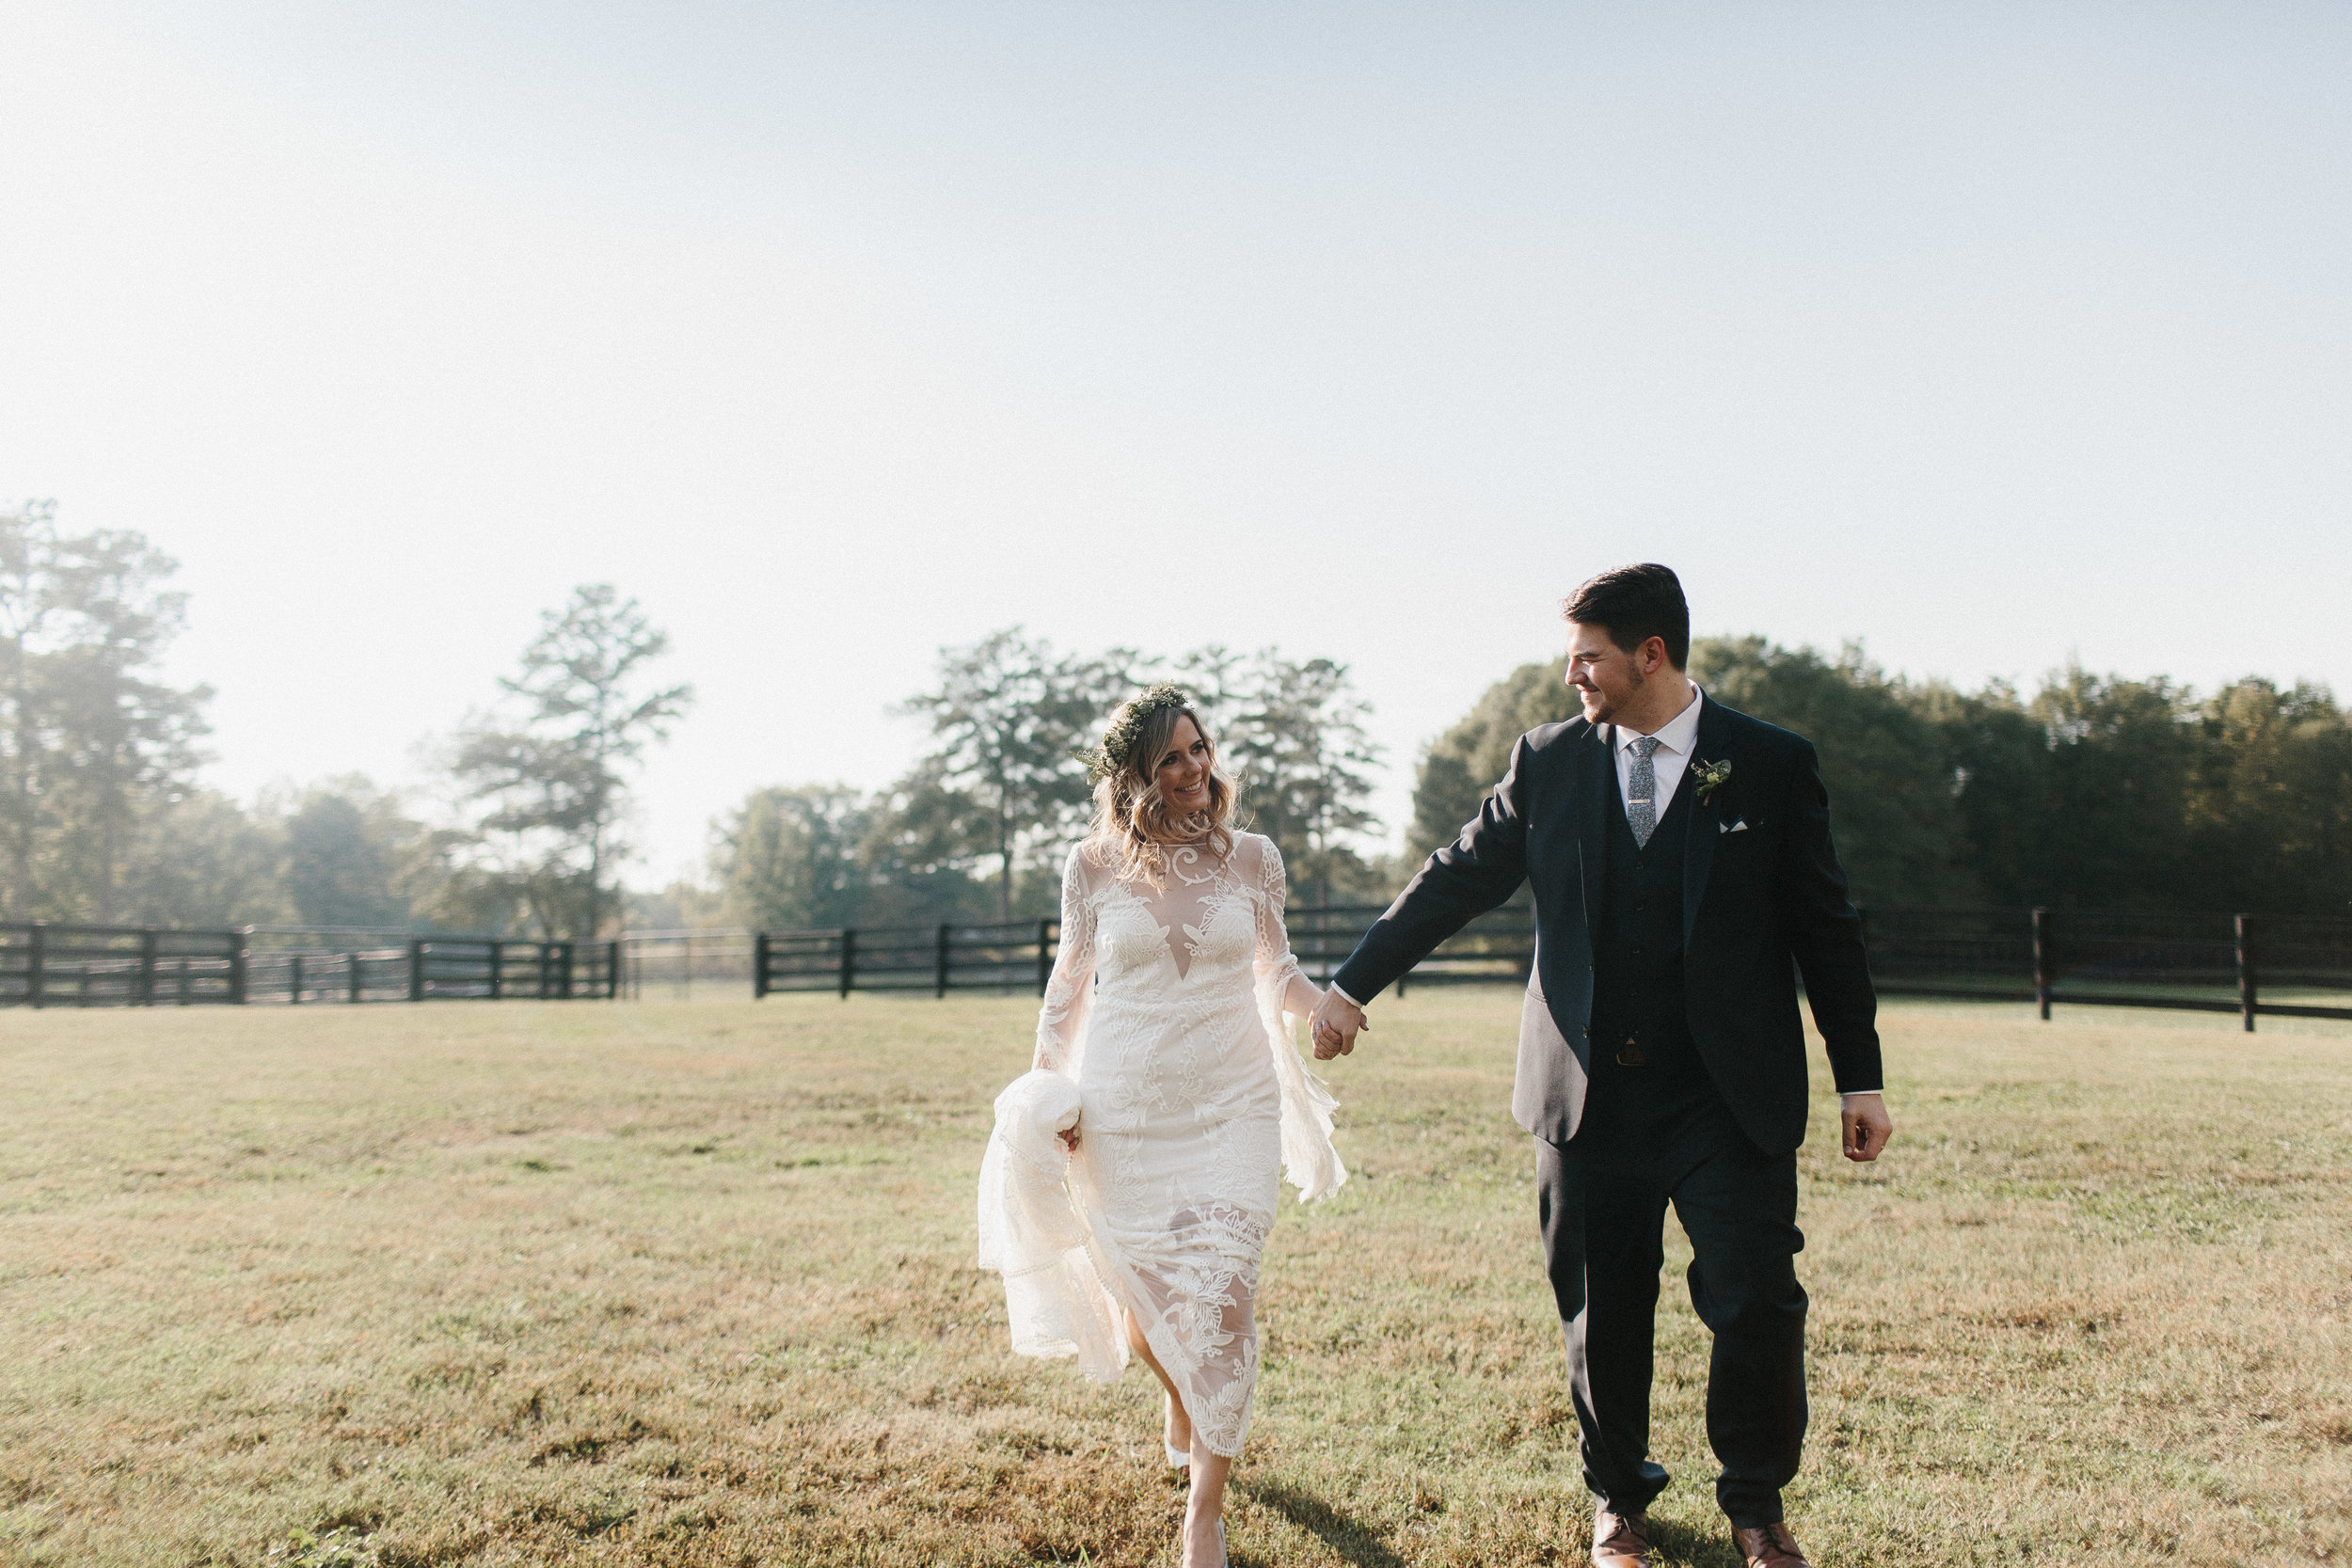 cherry_hollow_farms_industrial_unique_venue_georgia_serenbe_wedding_boho_midsummer_nights_dream_river_west_1424.jpg